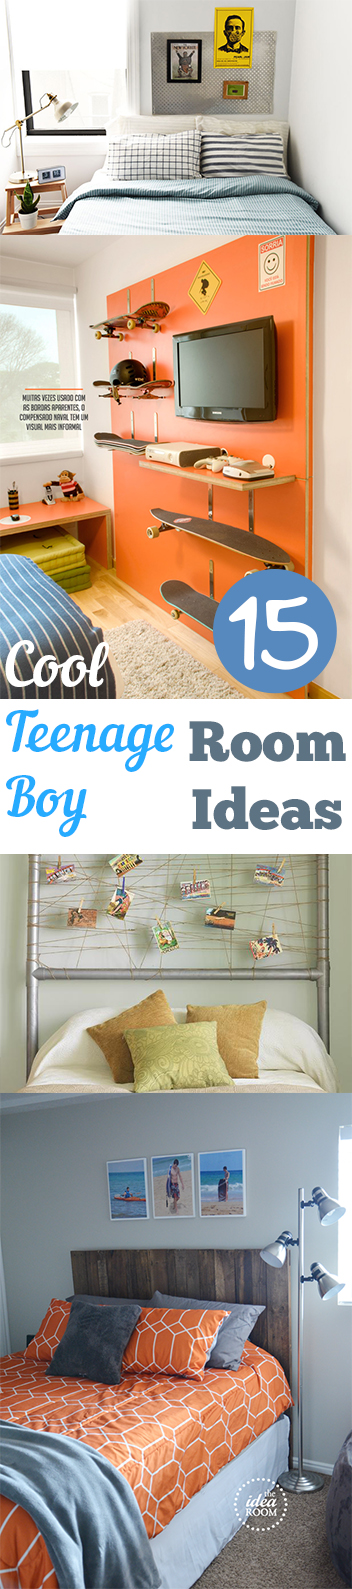 15 cool boy room ideas and elements recycled crafts - Cool boy room ideas ...